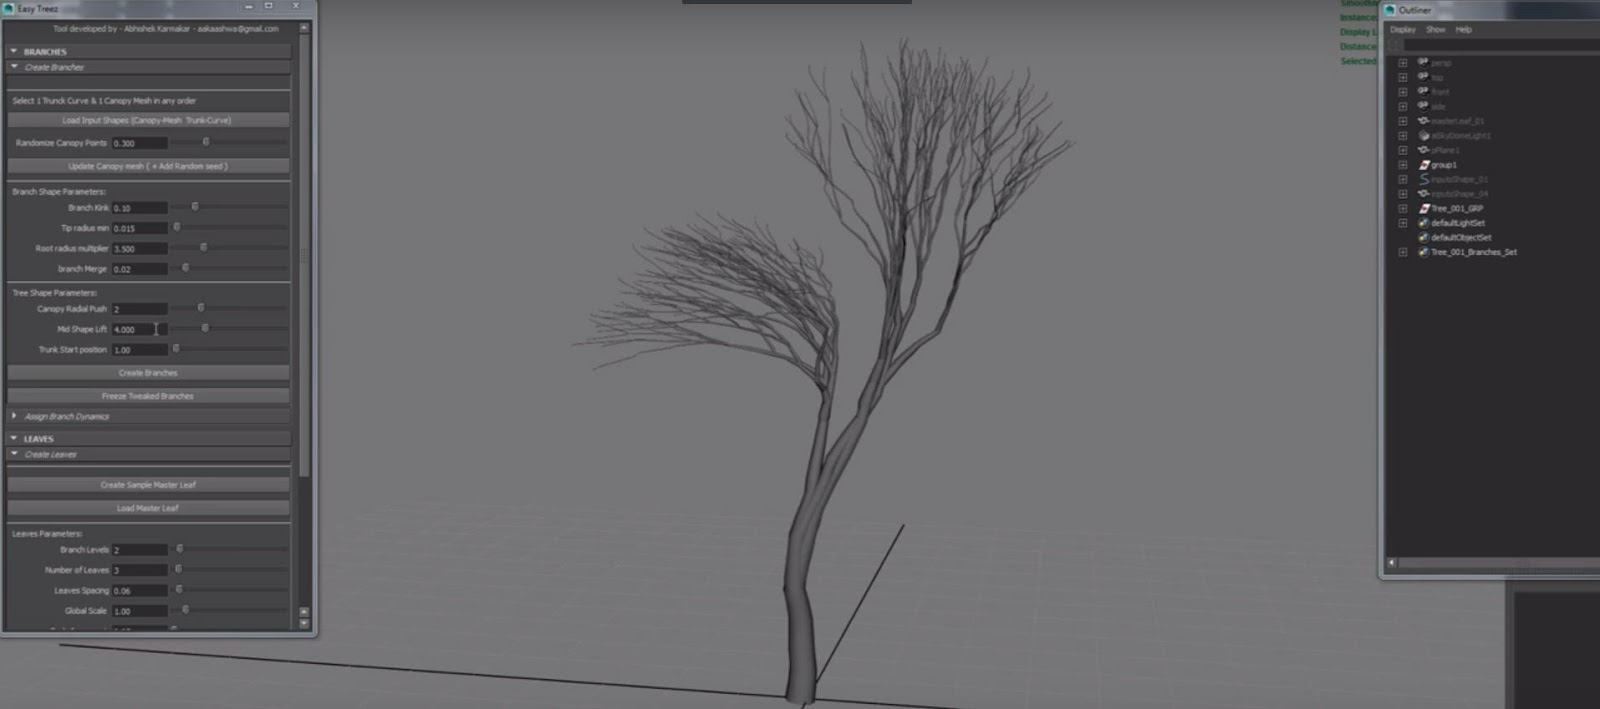 Easy Treez V1 0 for Maya - Plugins Reviews and Download free